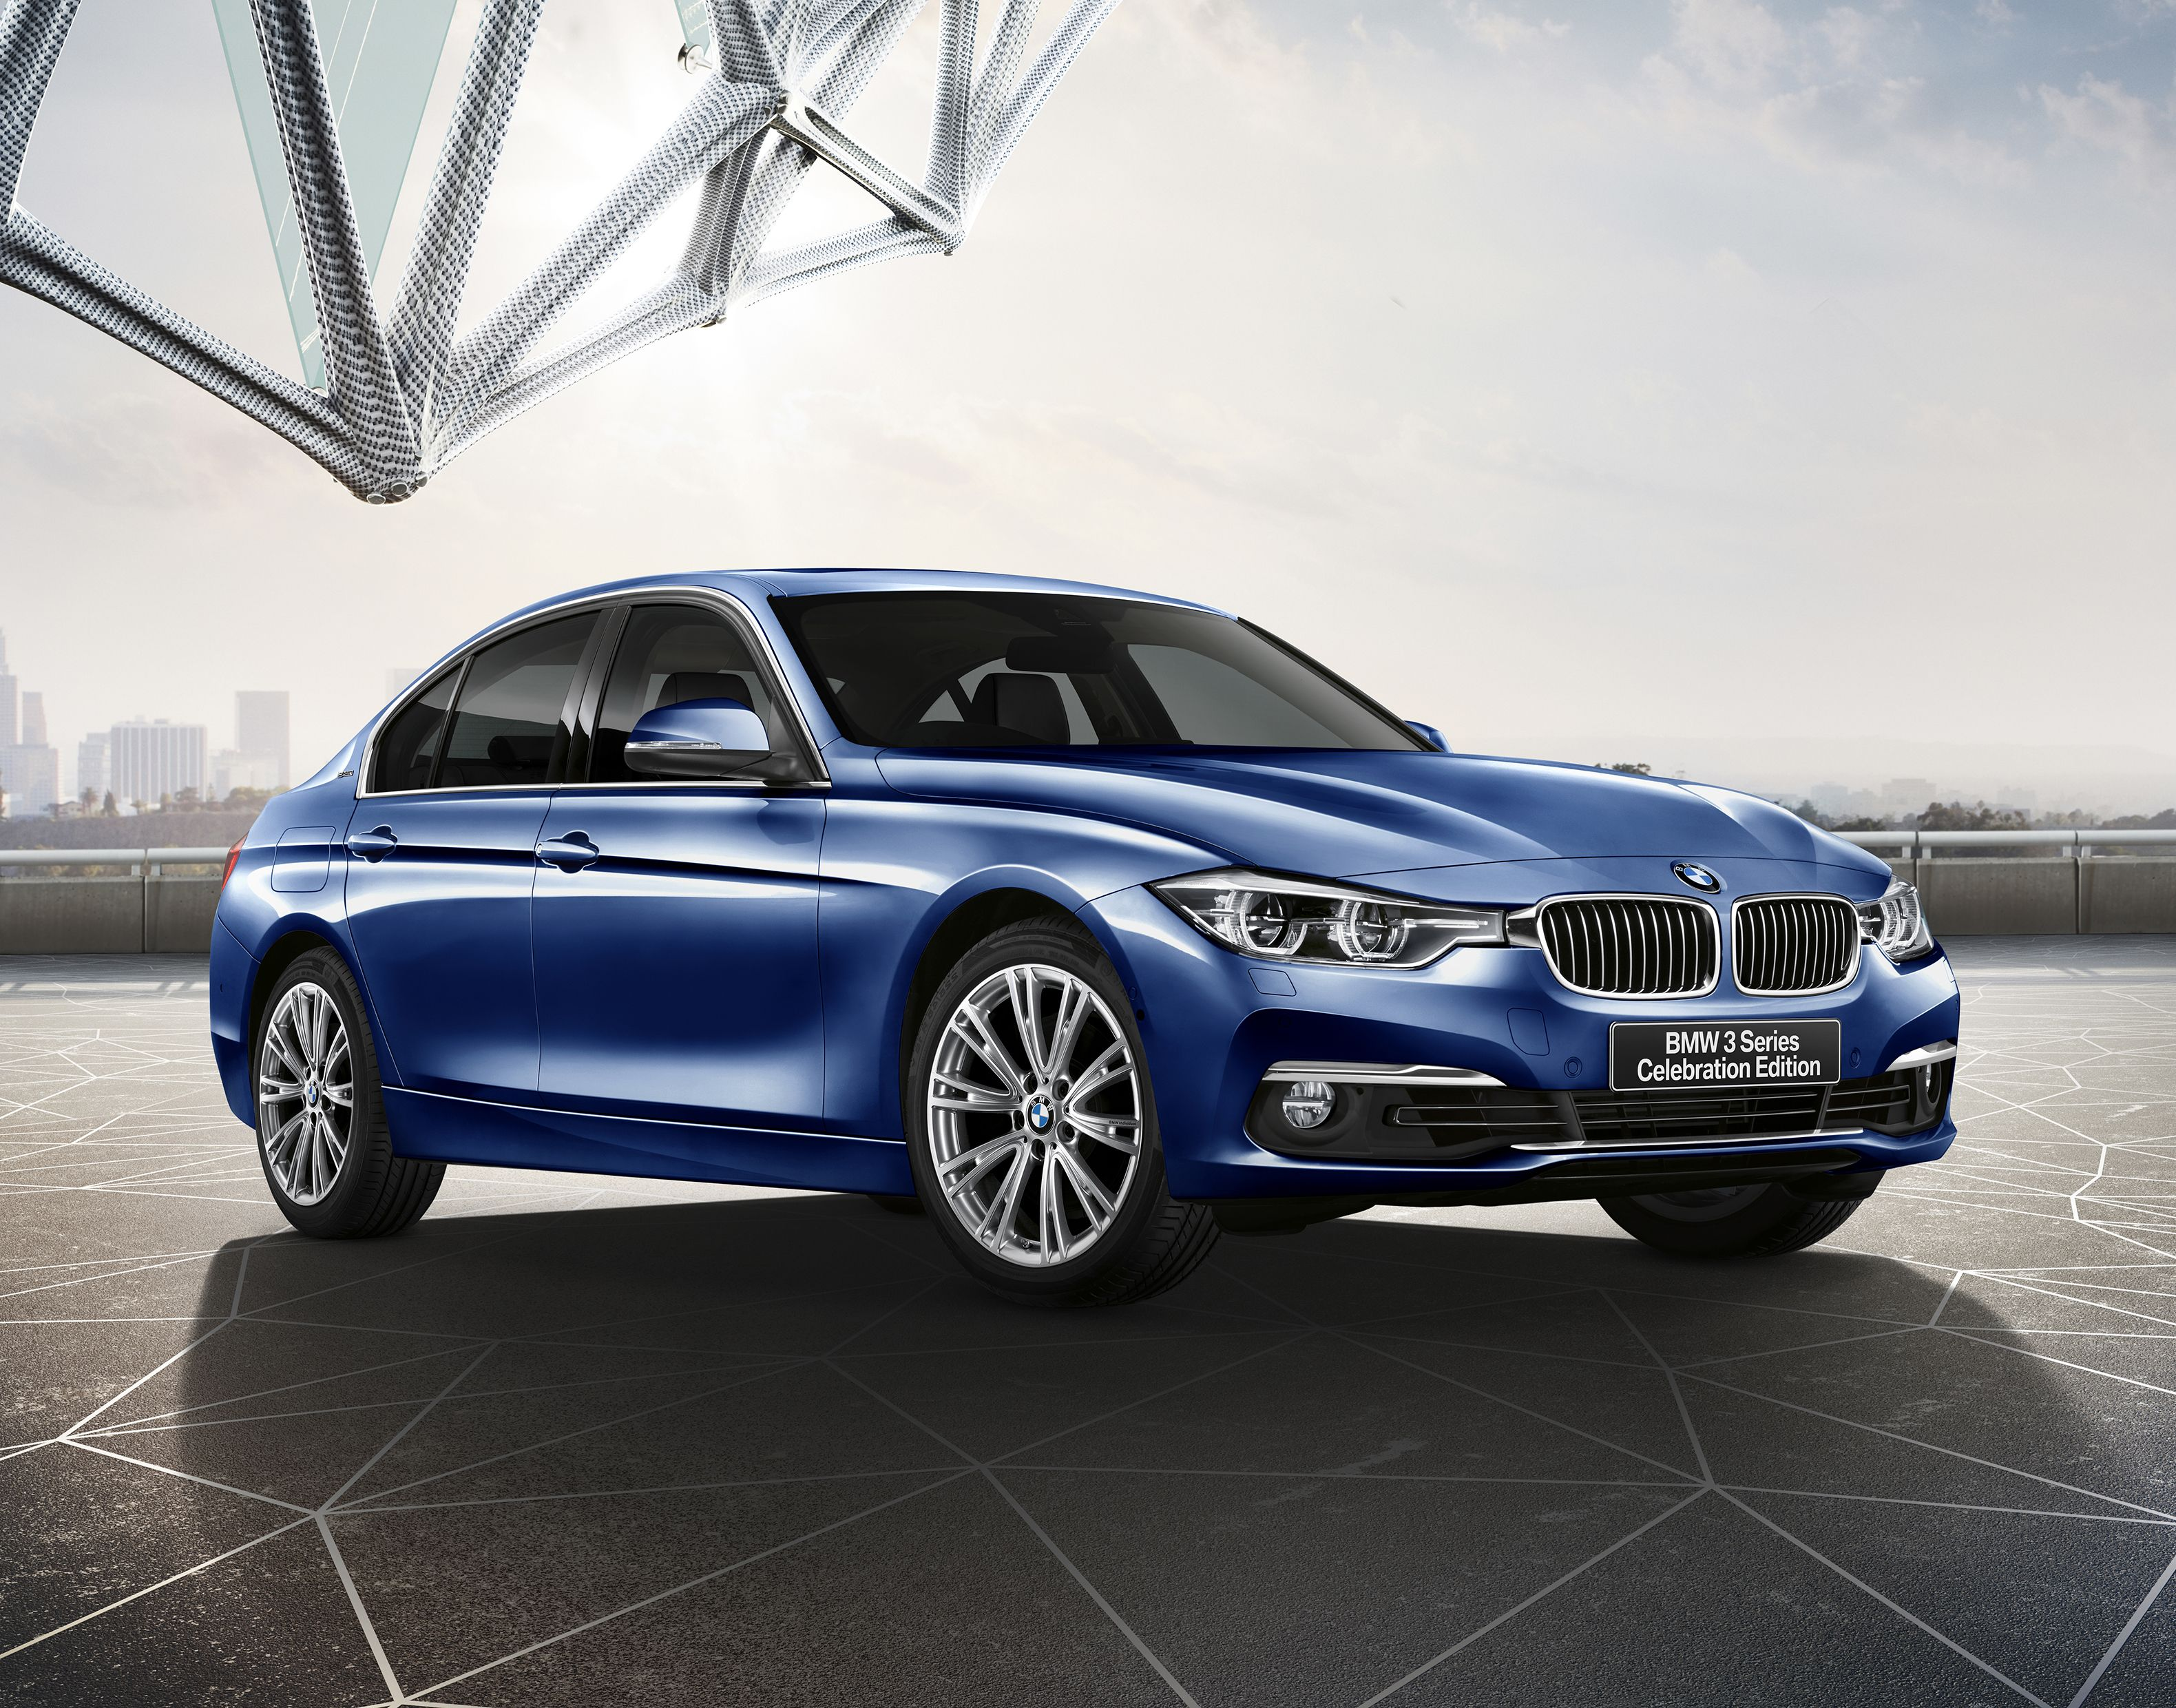 Car And Driver Says The 330e Is A Sparkling Performer Bmw Bmw Sports Car Bmw 3 Series